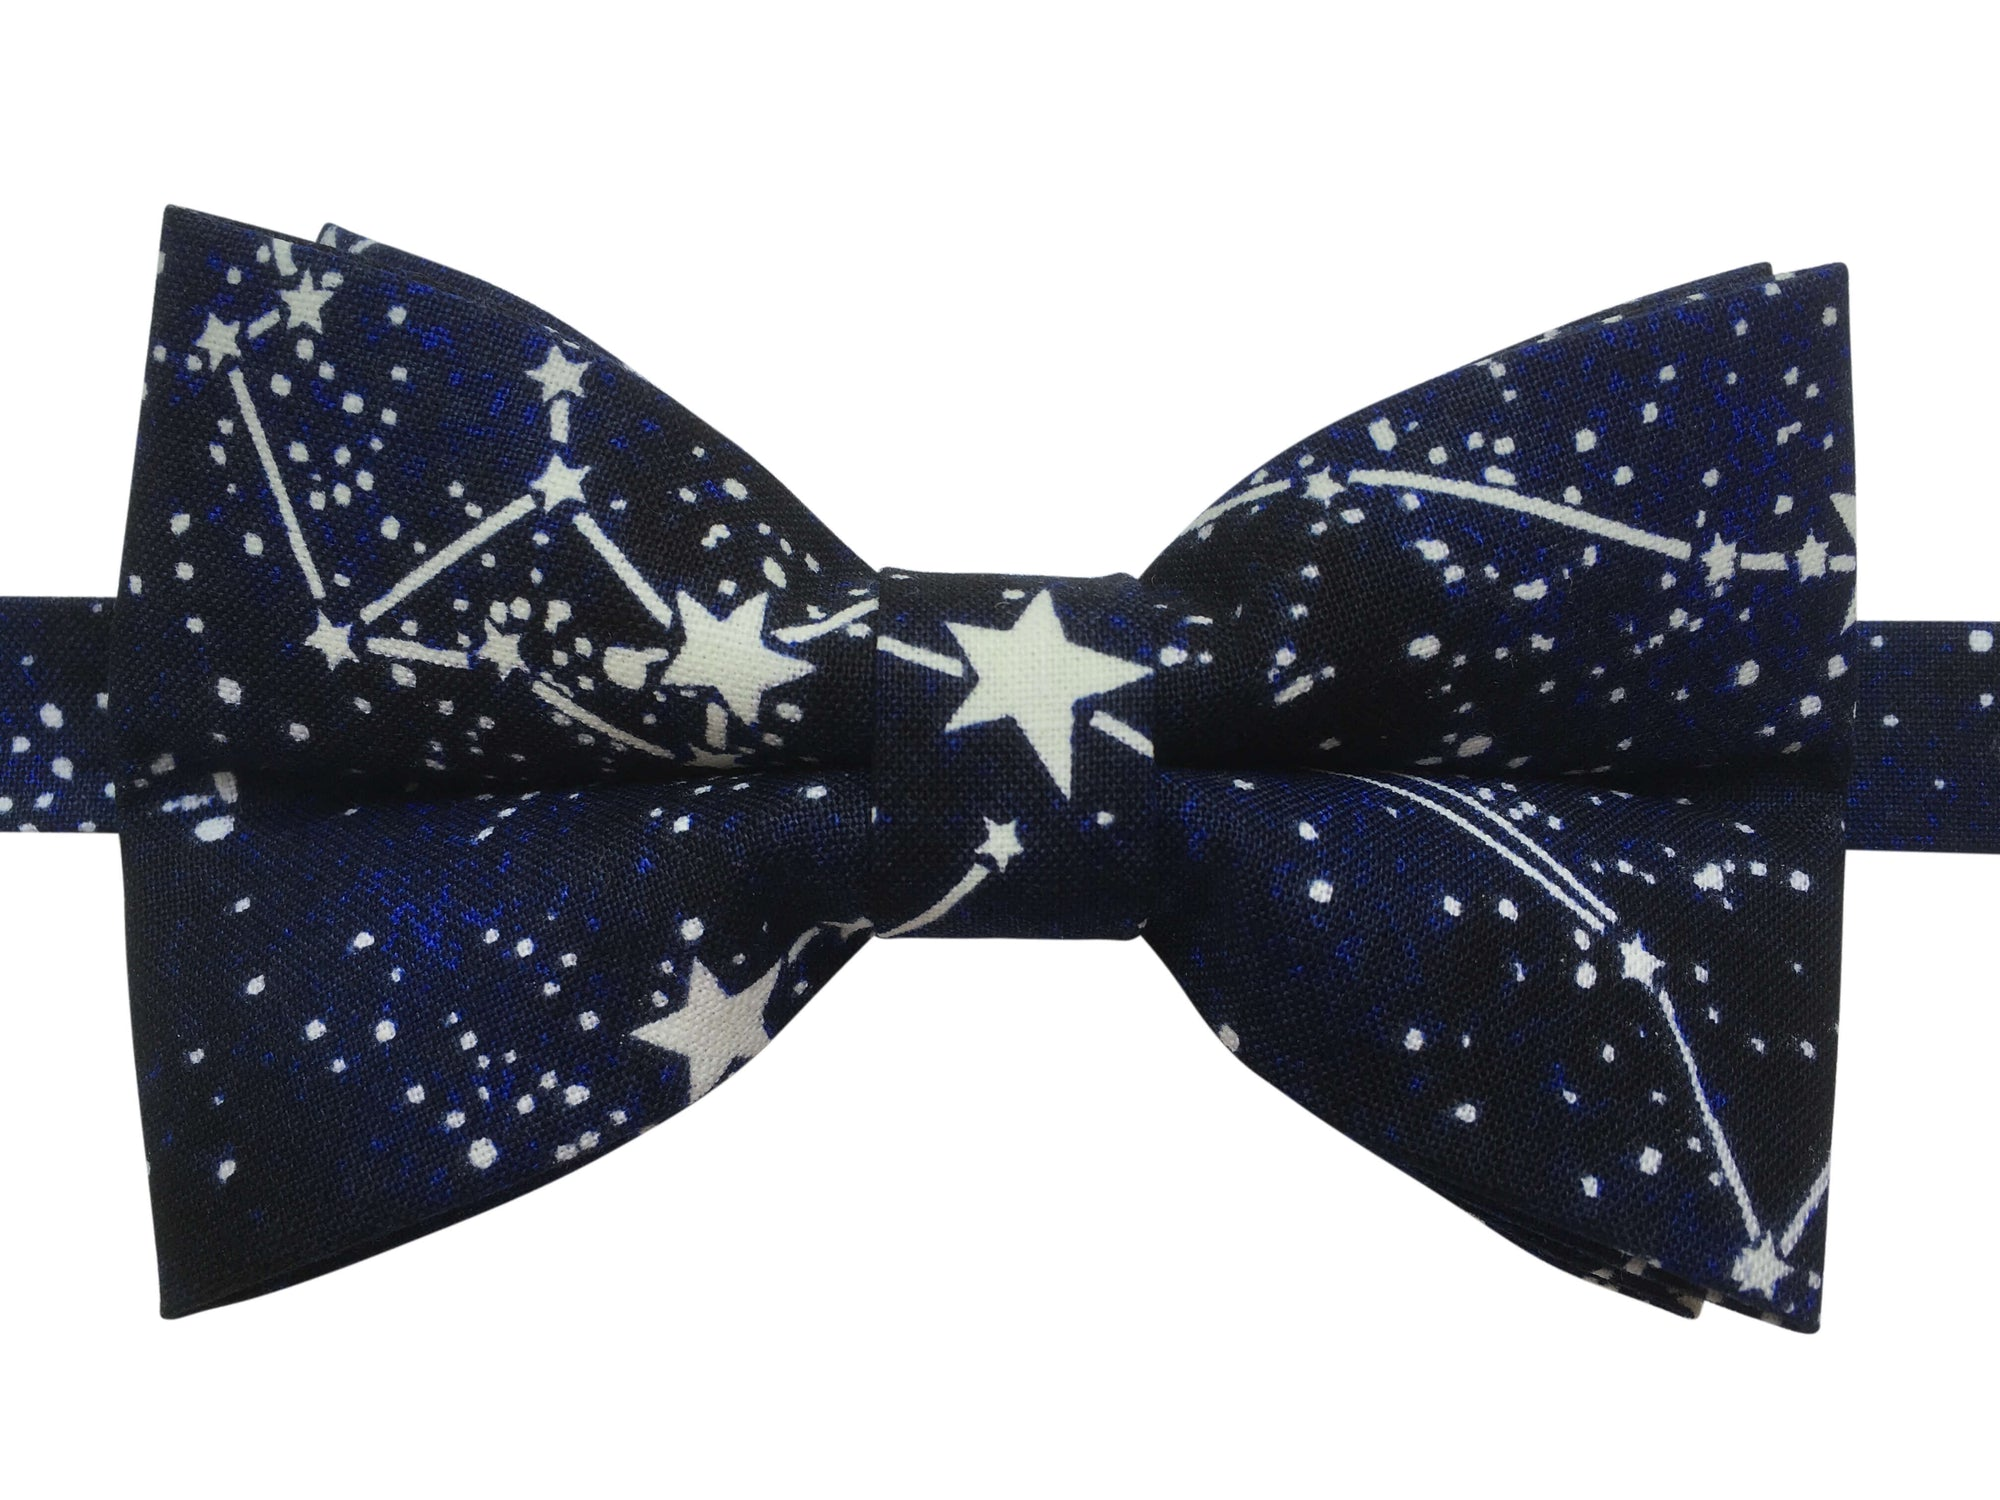 Glow in the Dark Astronomy & Stars Bow Tie